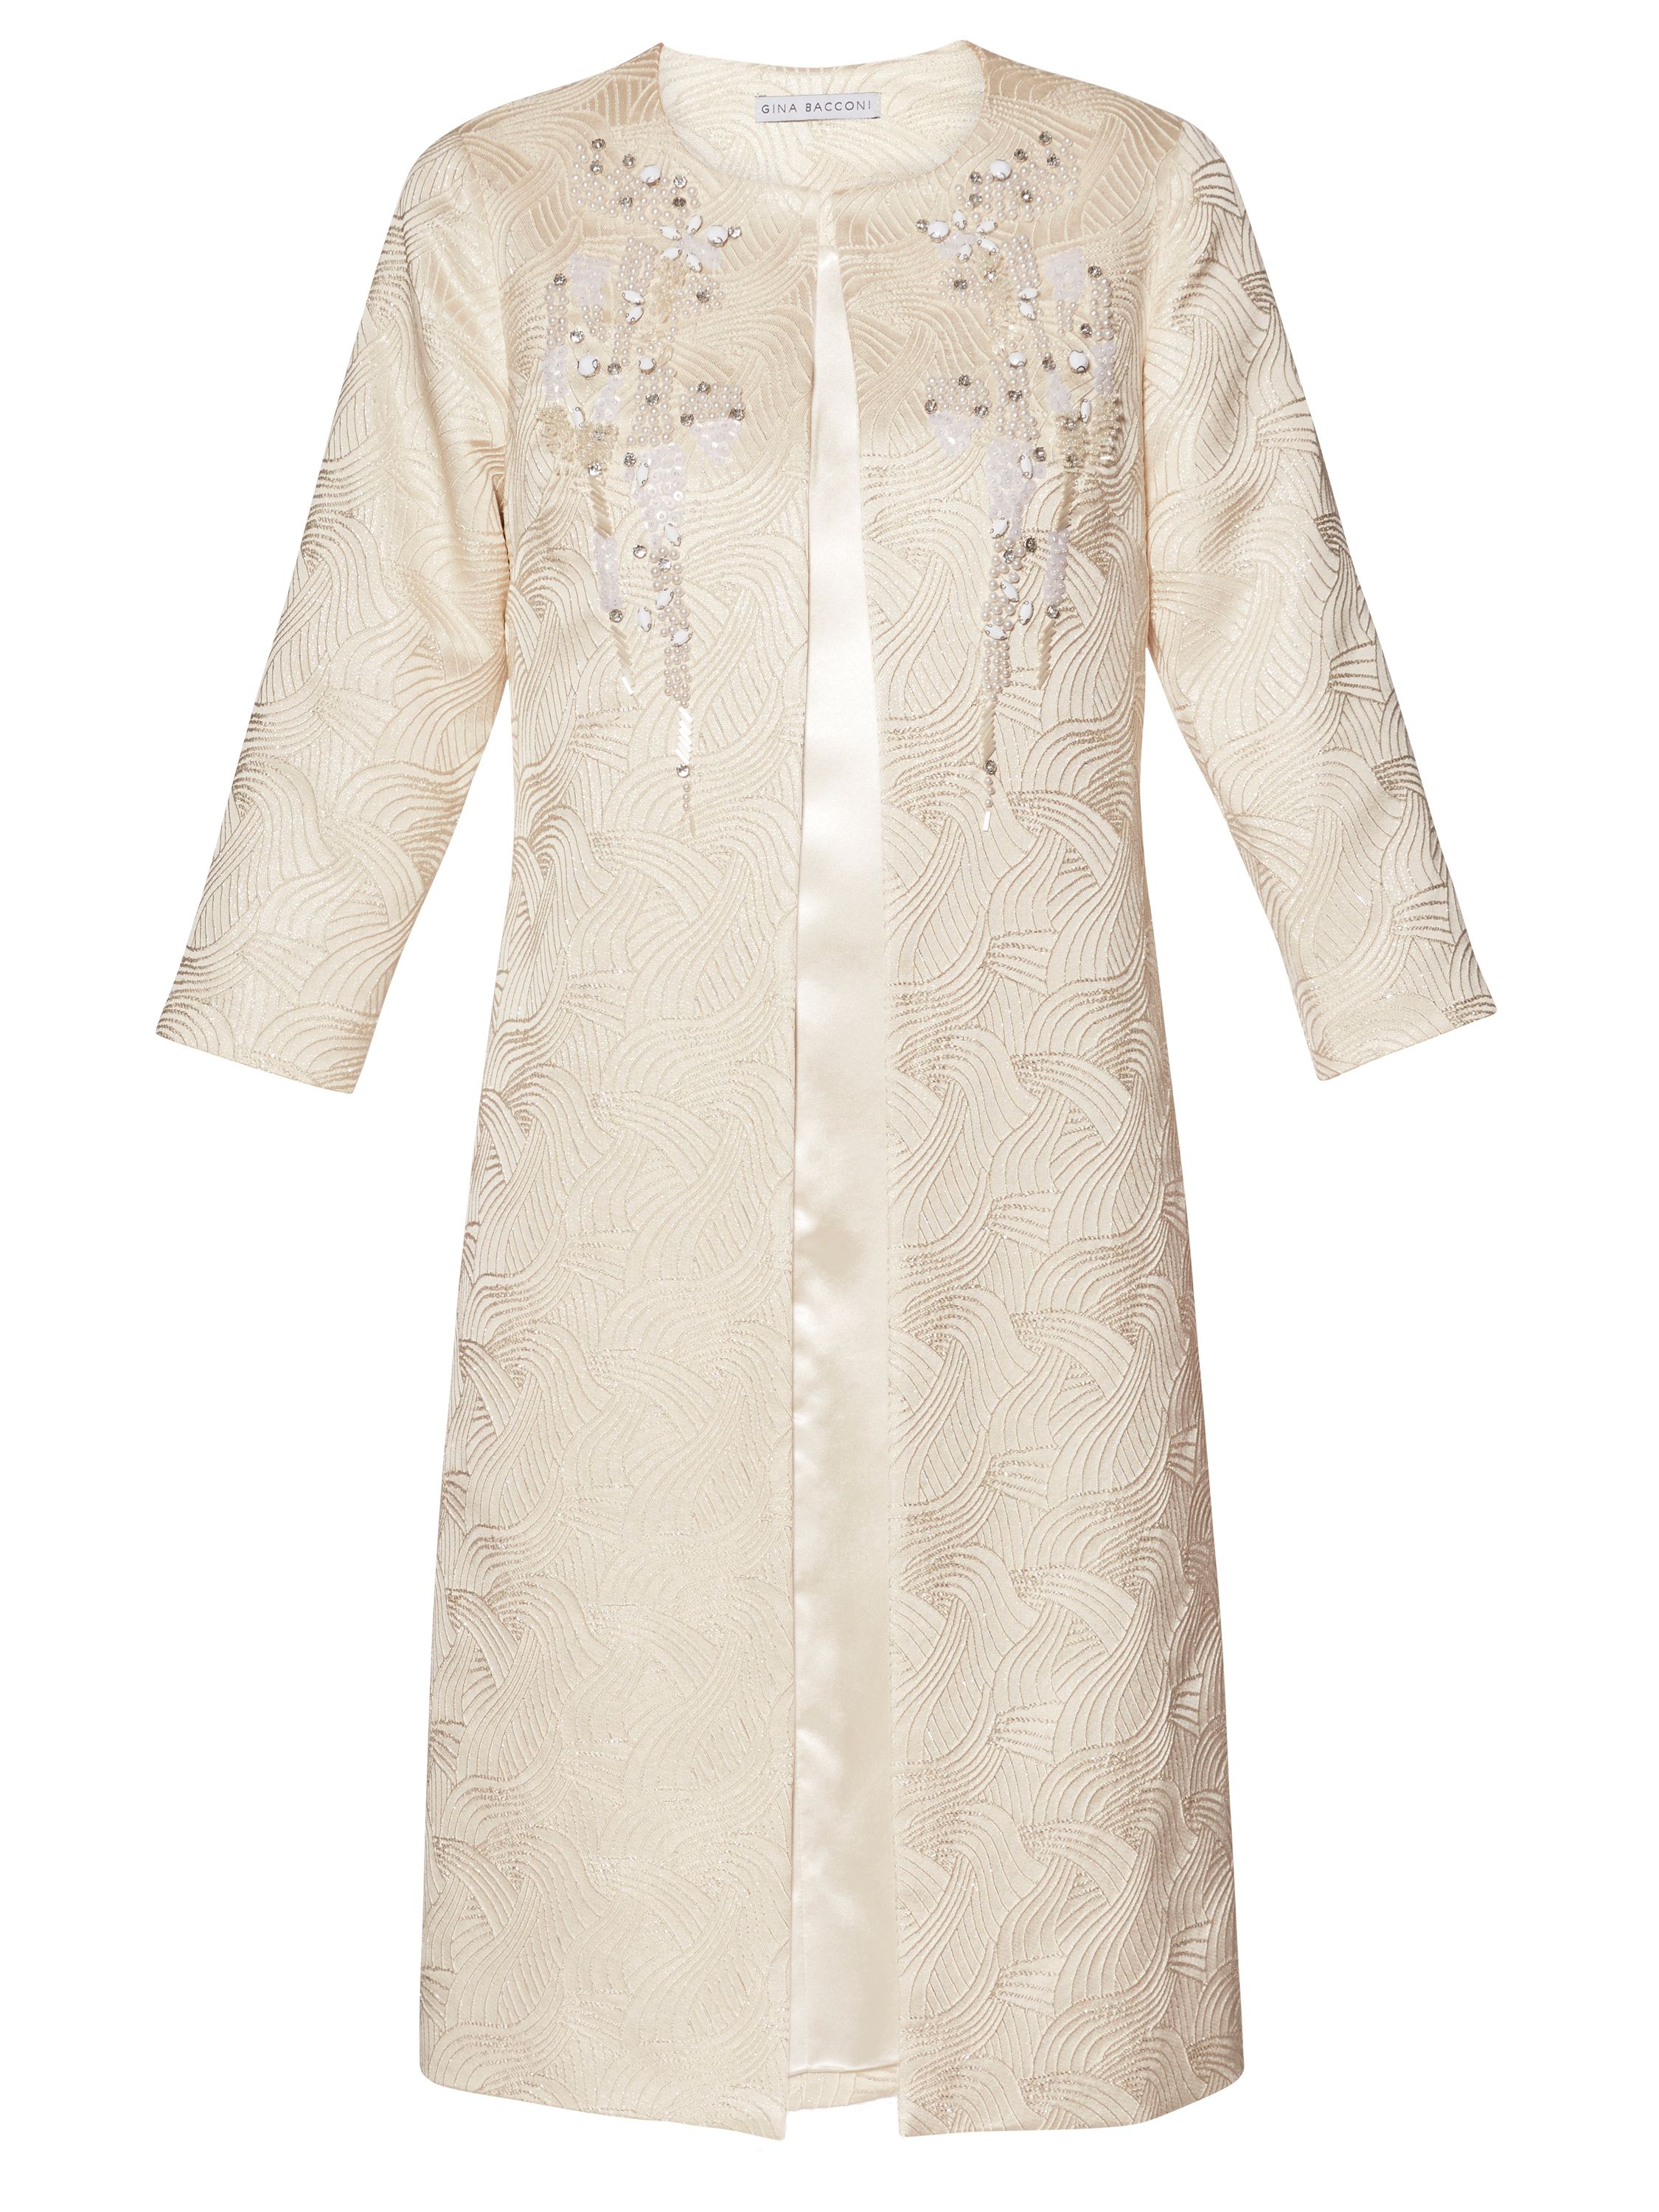 Gina Bacconi Aertex metallic jacquard beaded coat, Cream